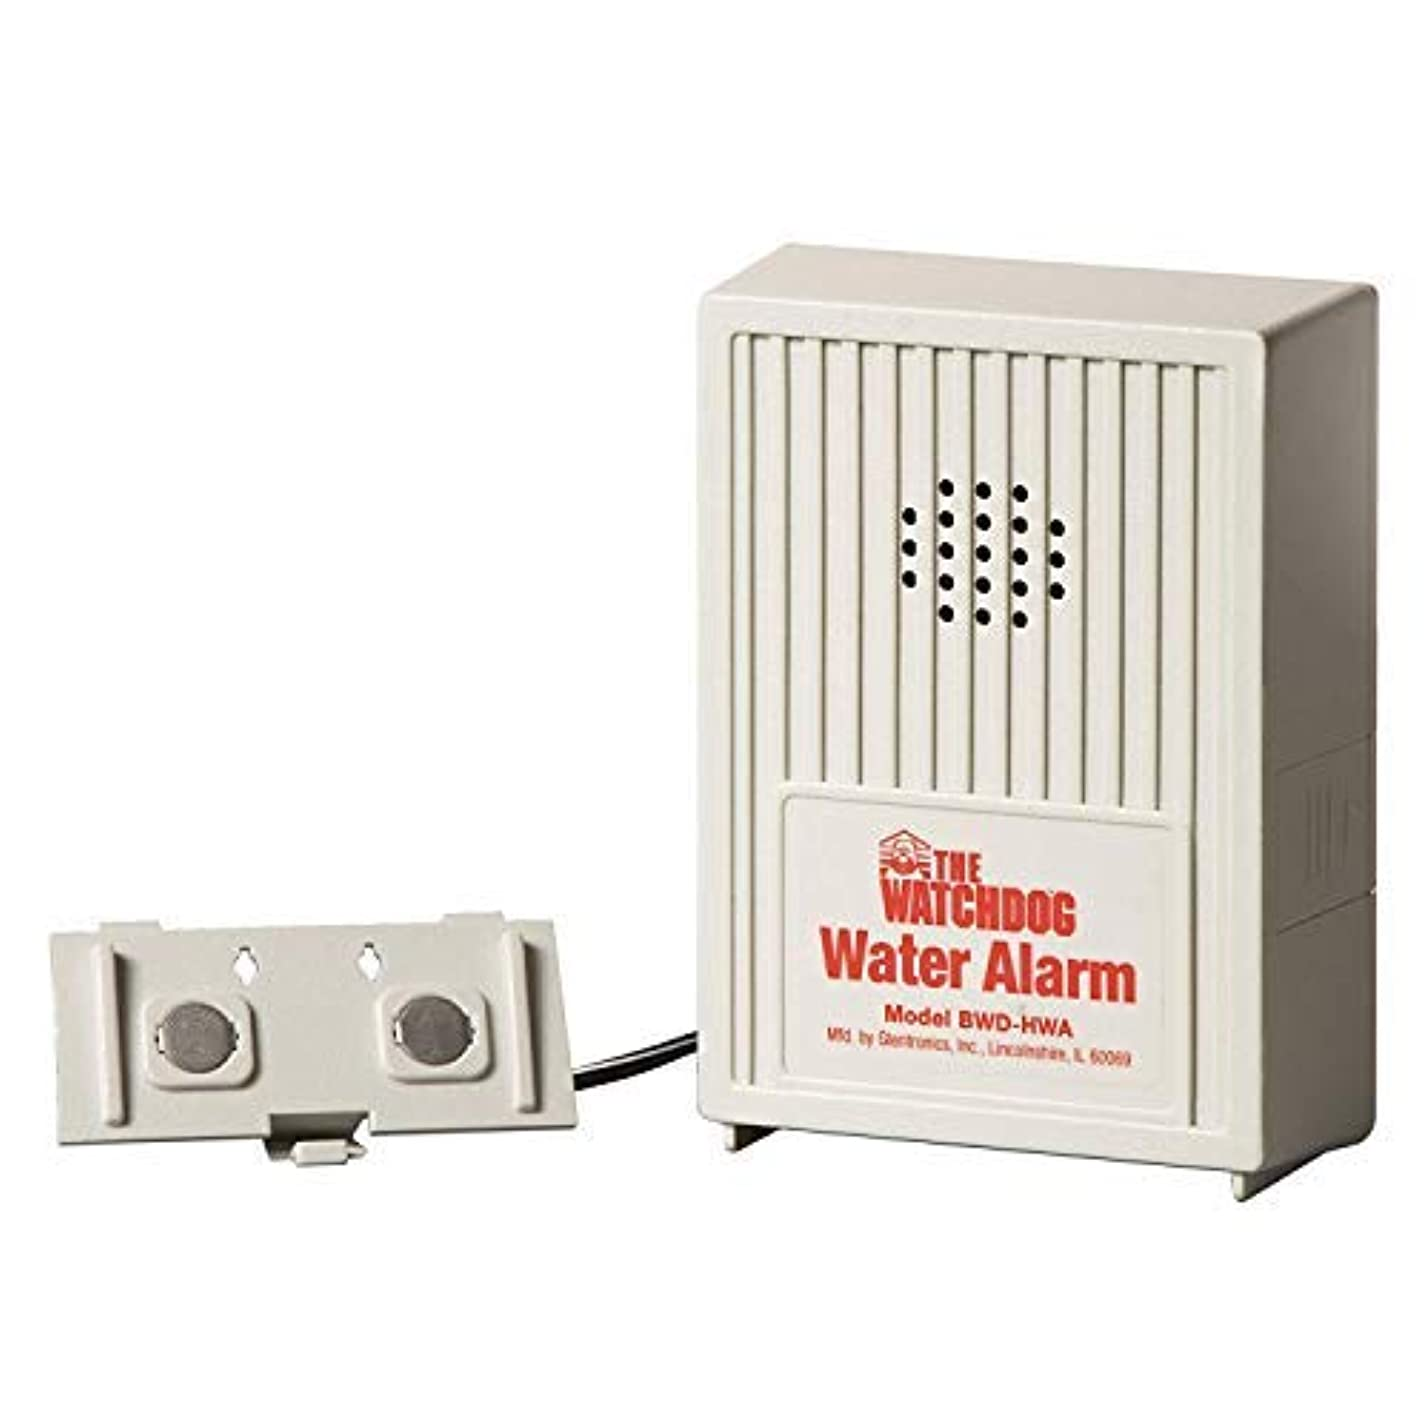 墓パット大統領BWD-HWA Basement Watchdog Water Sensor and Alarm [並行輸入品]